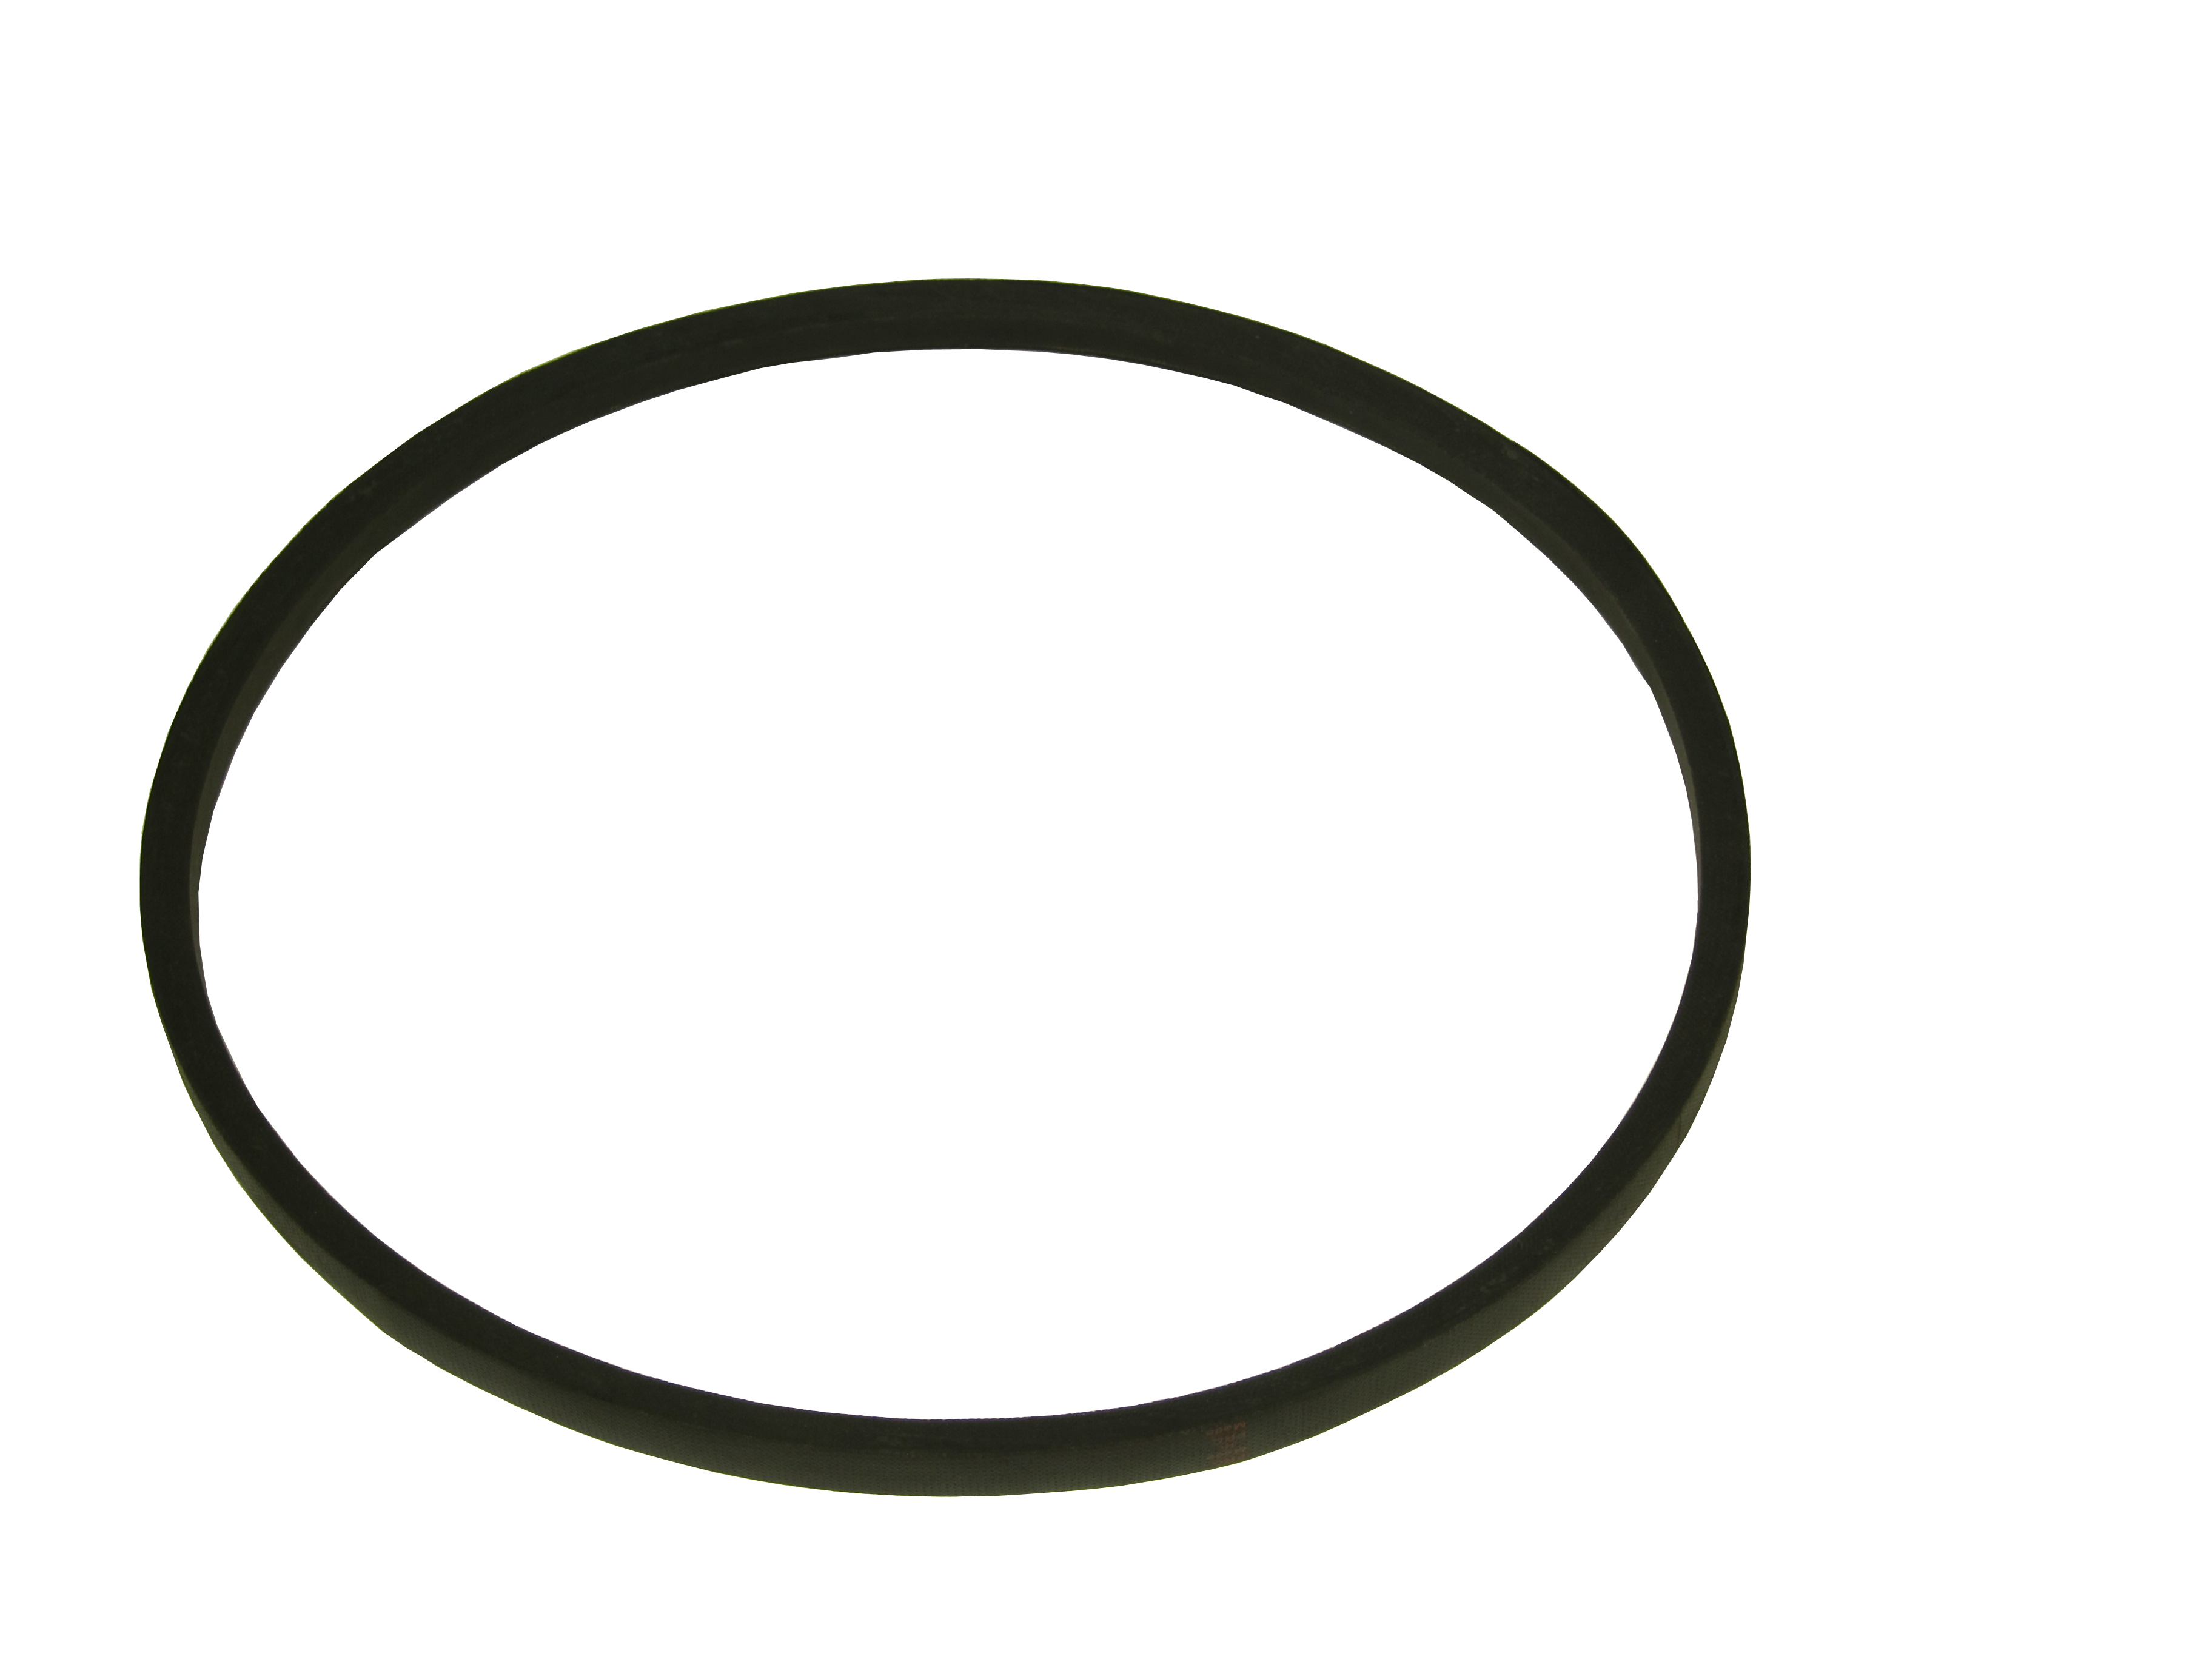 051-006 replacement v-belts (two required)